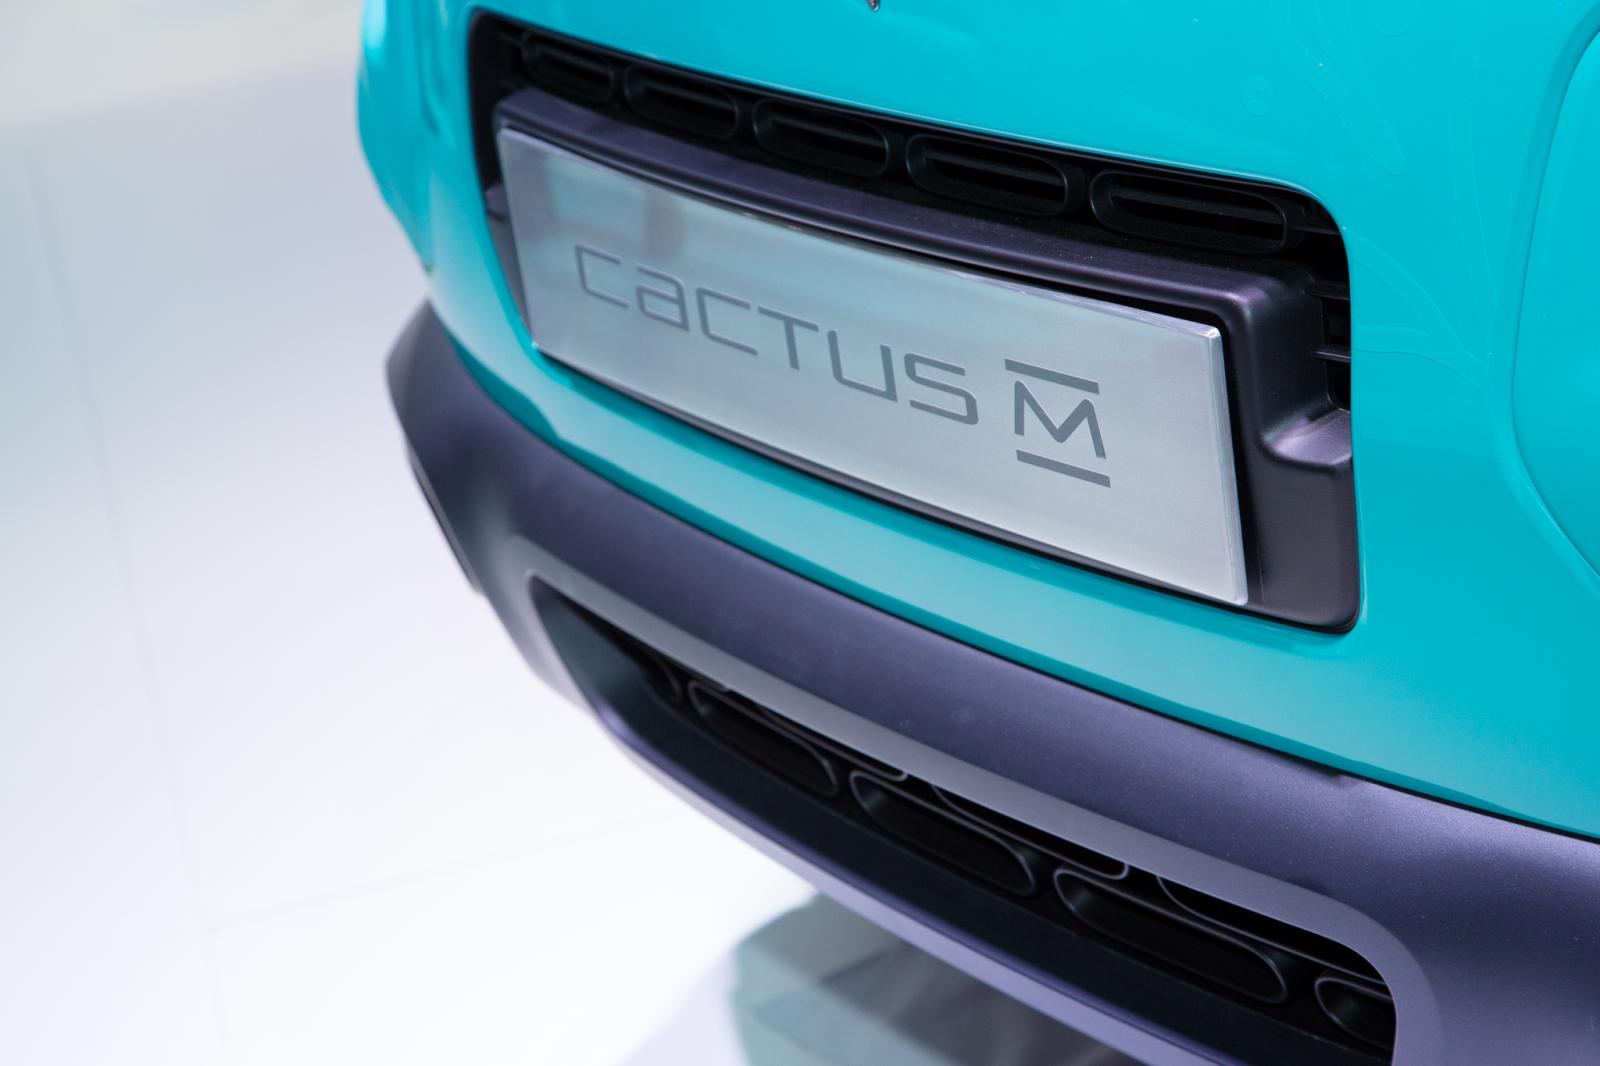 CACTUS M 2015 front plate